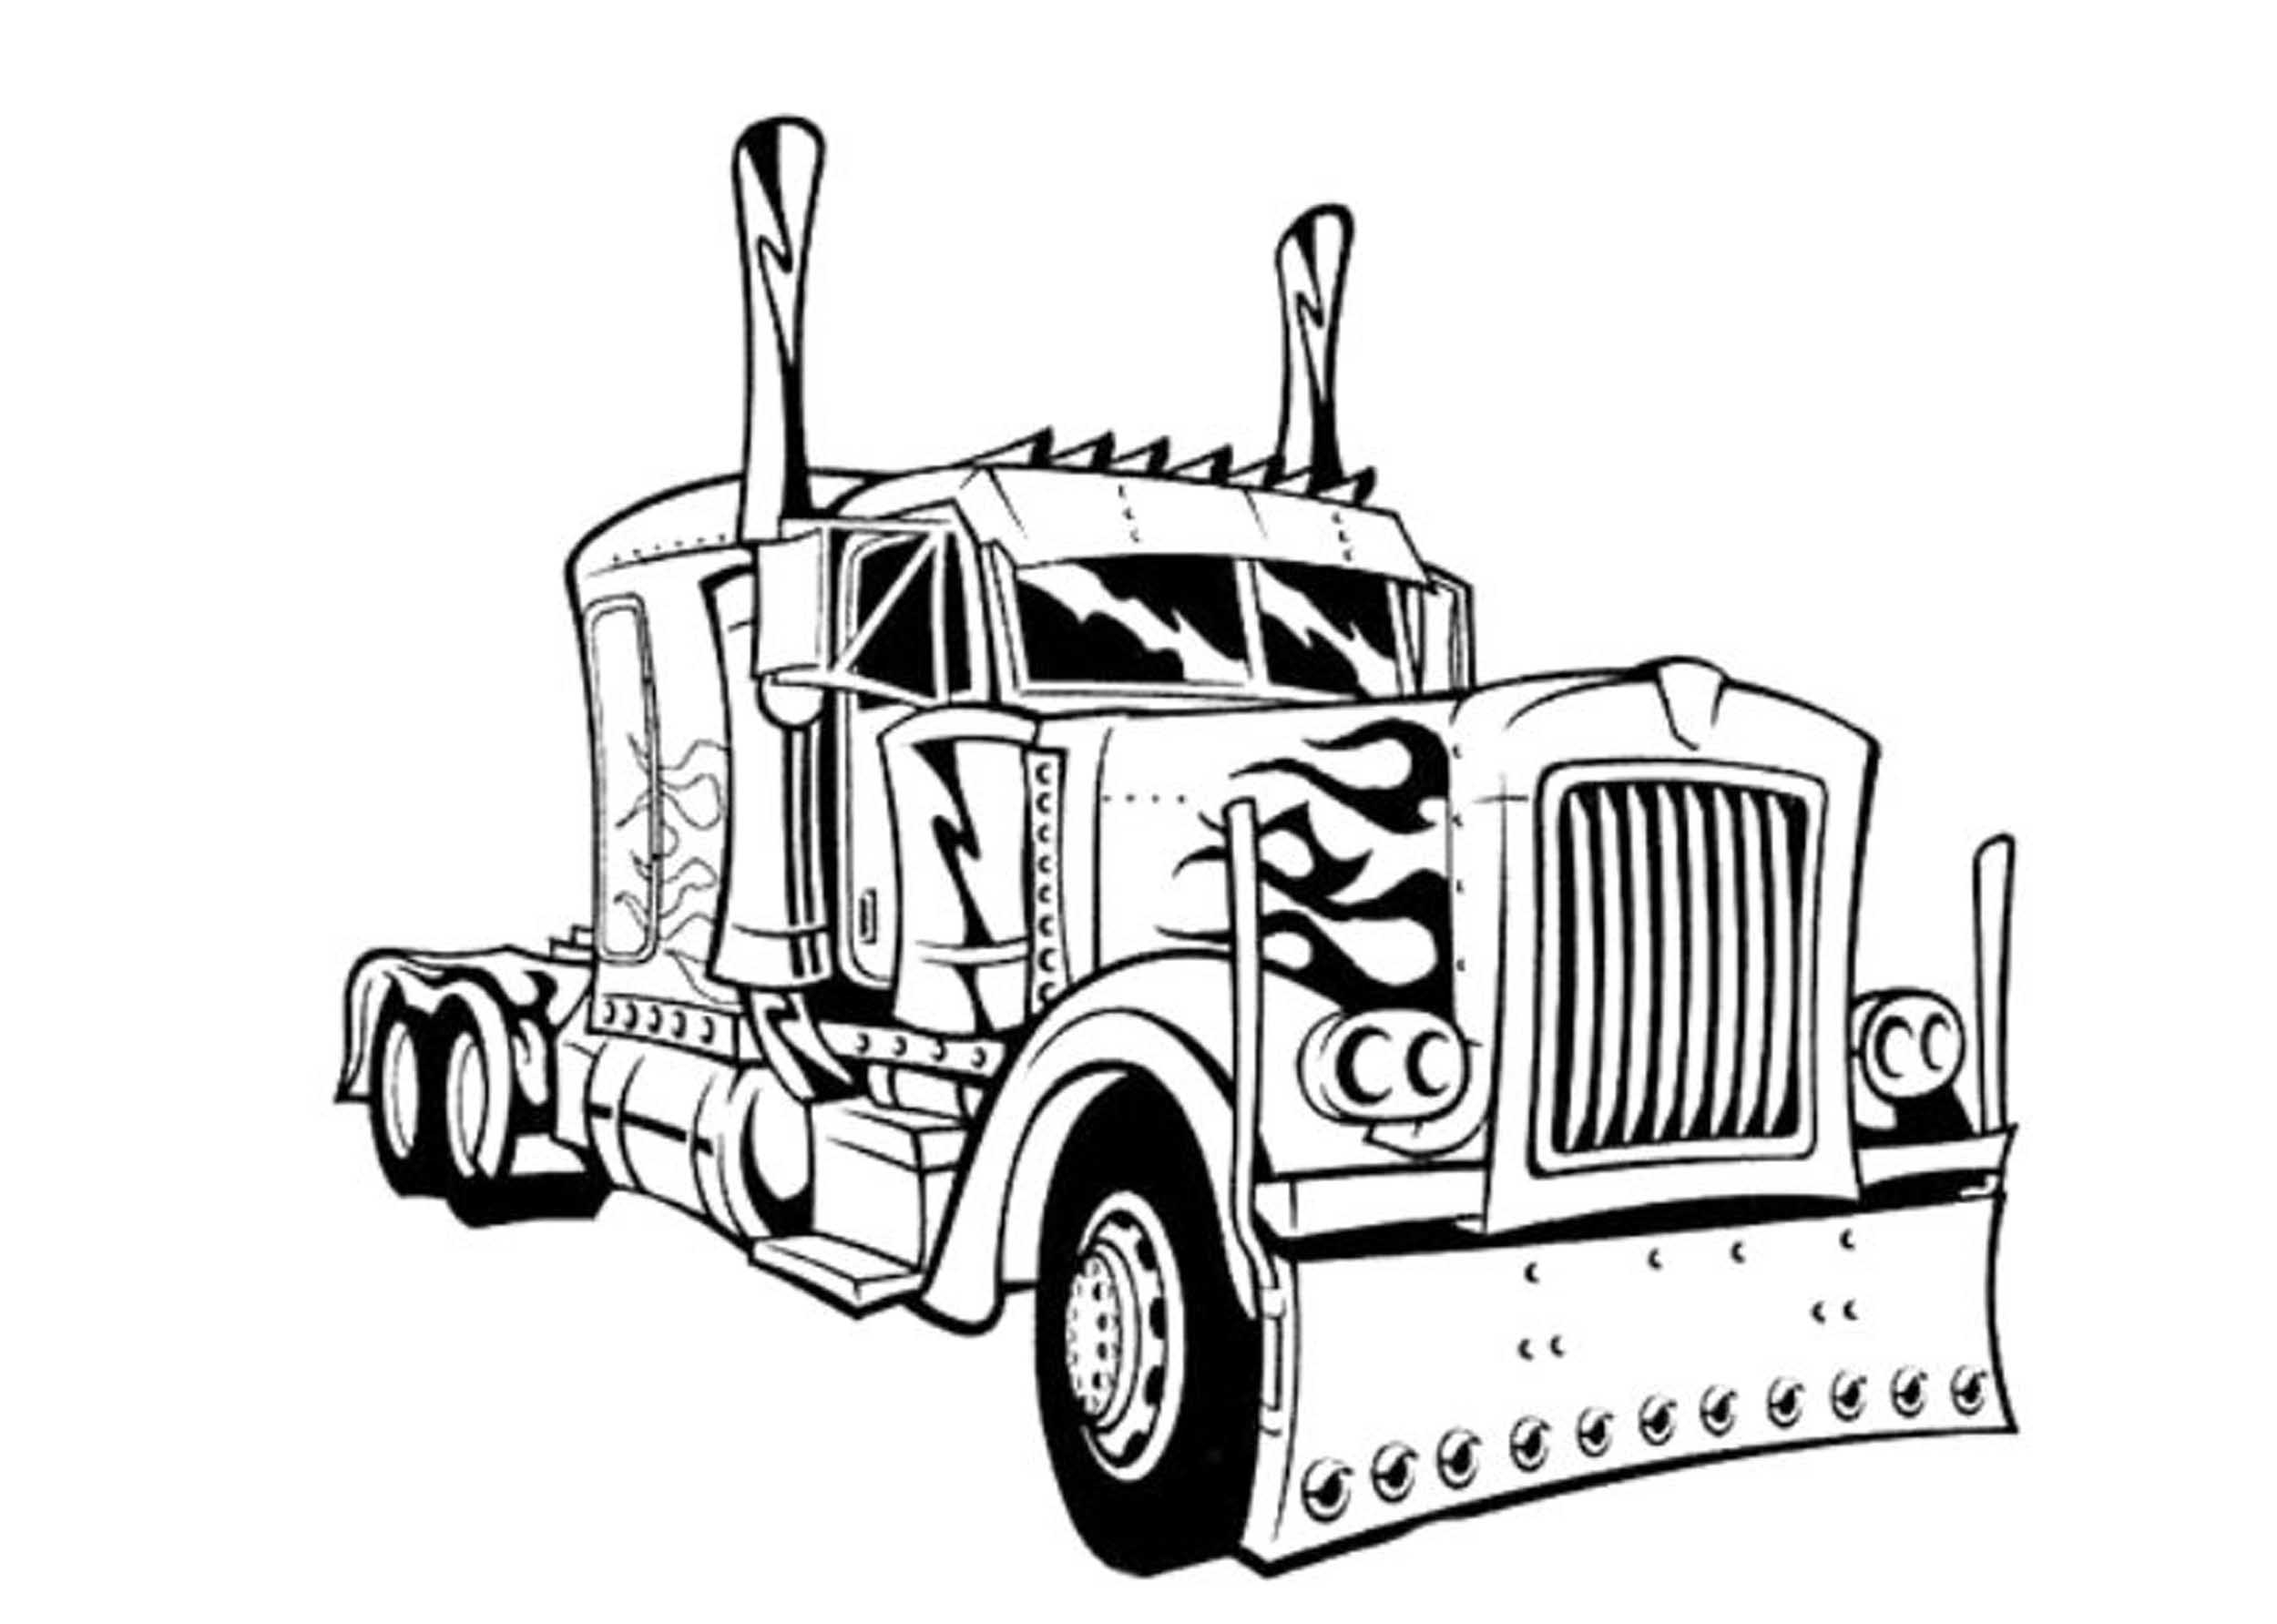 Truck Outline Drawing at GetDrawings.com | Free for personal use ...